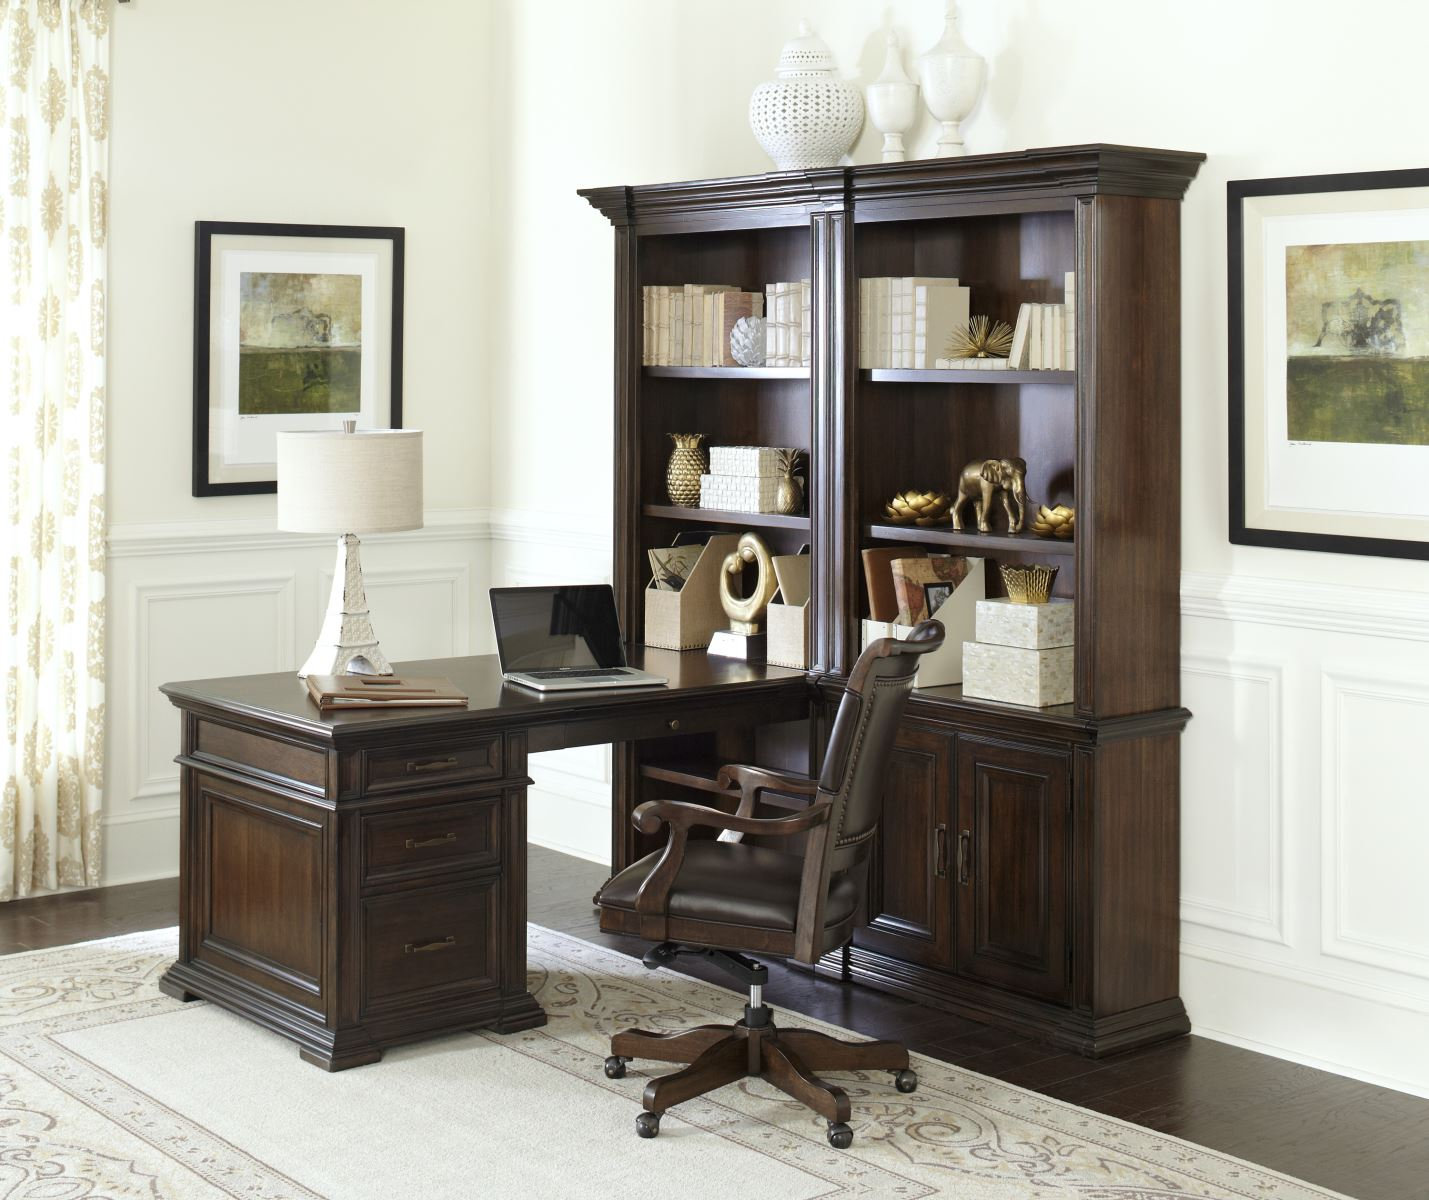 Grand Classic Peninsula Desk With Bookcases Partner Desk Computer